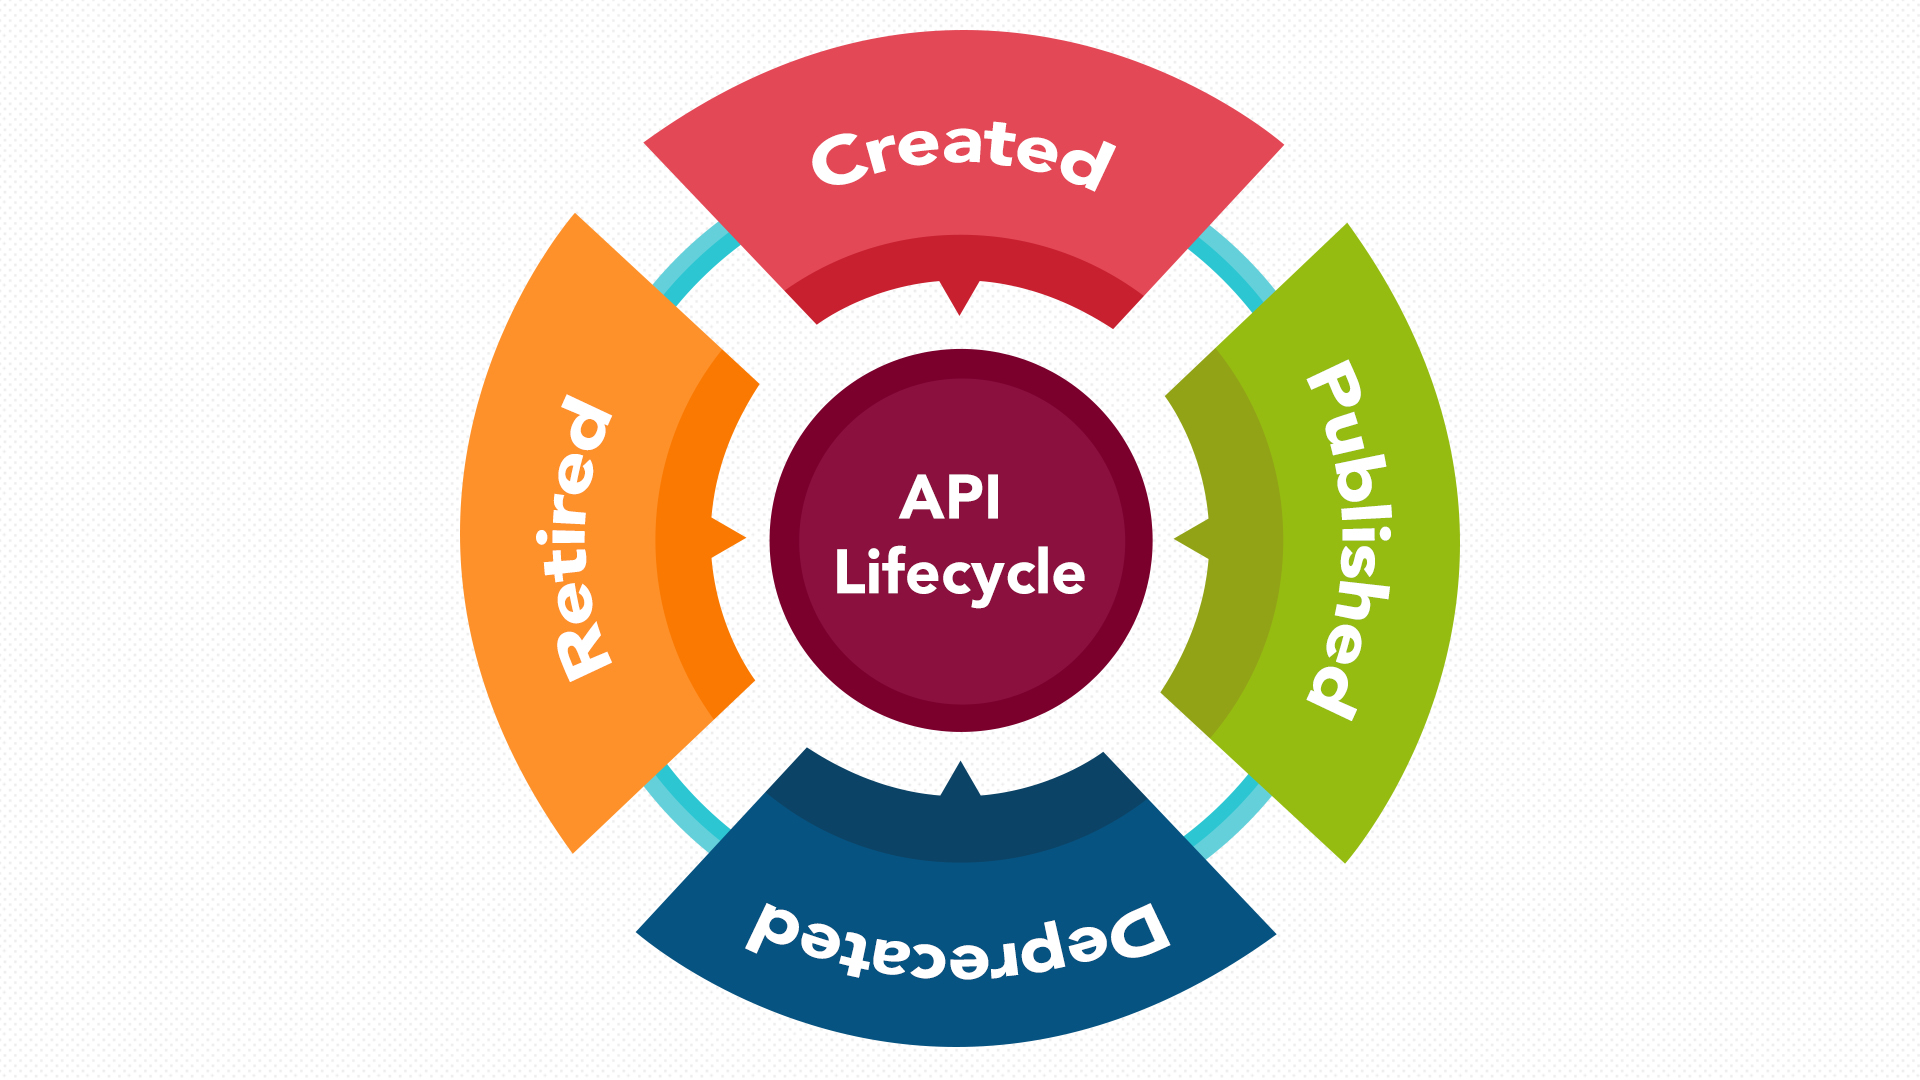 API lifecycle diagram